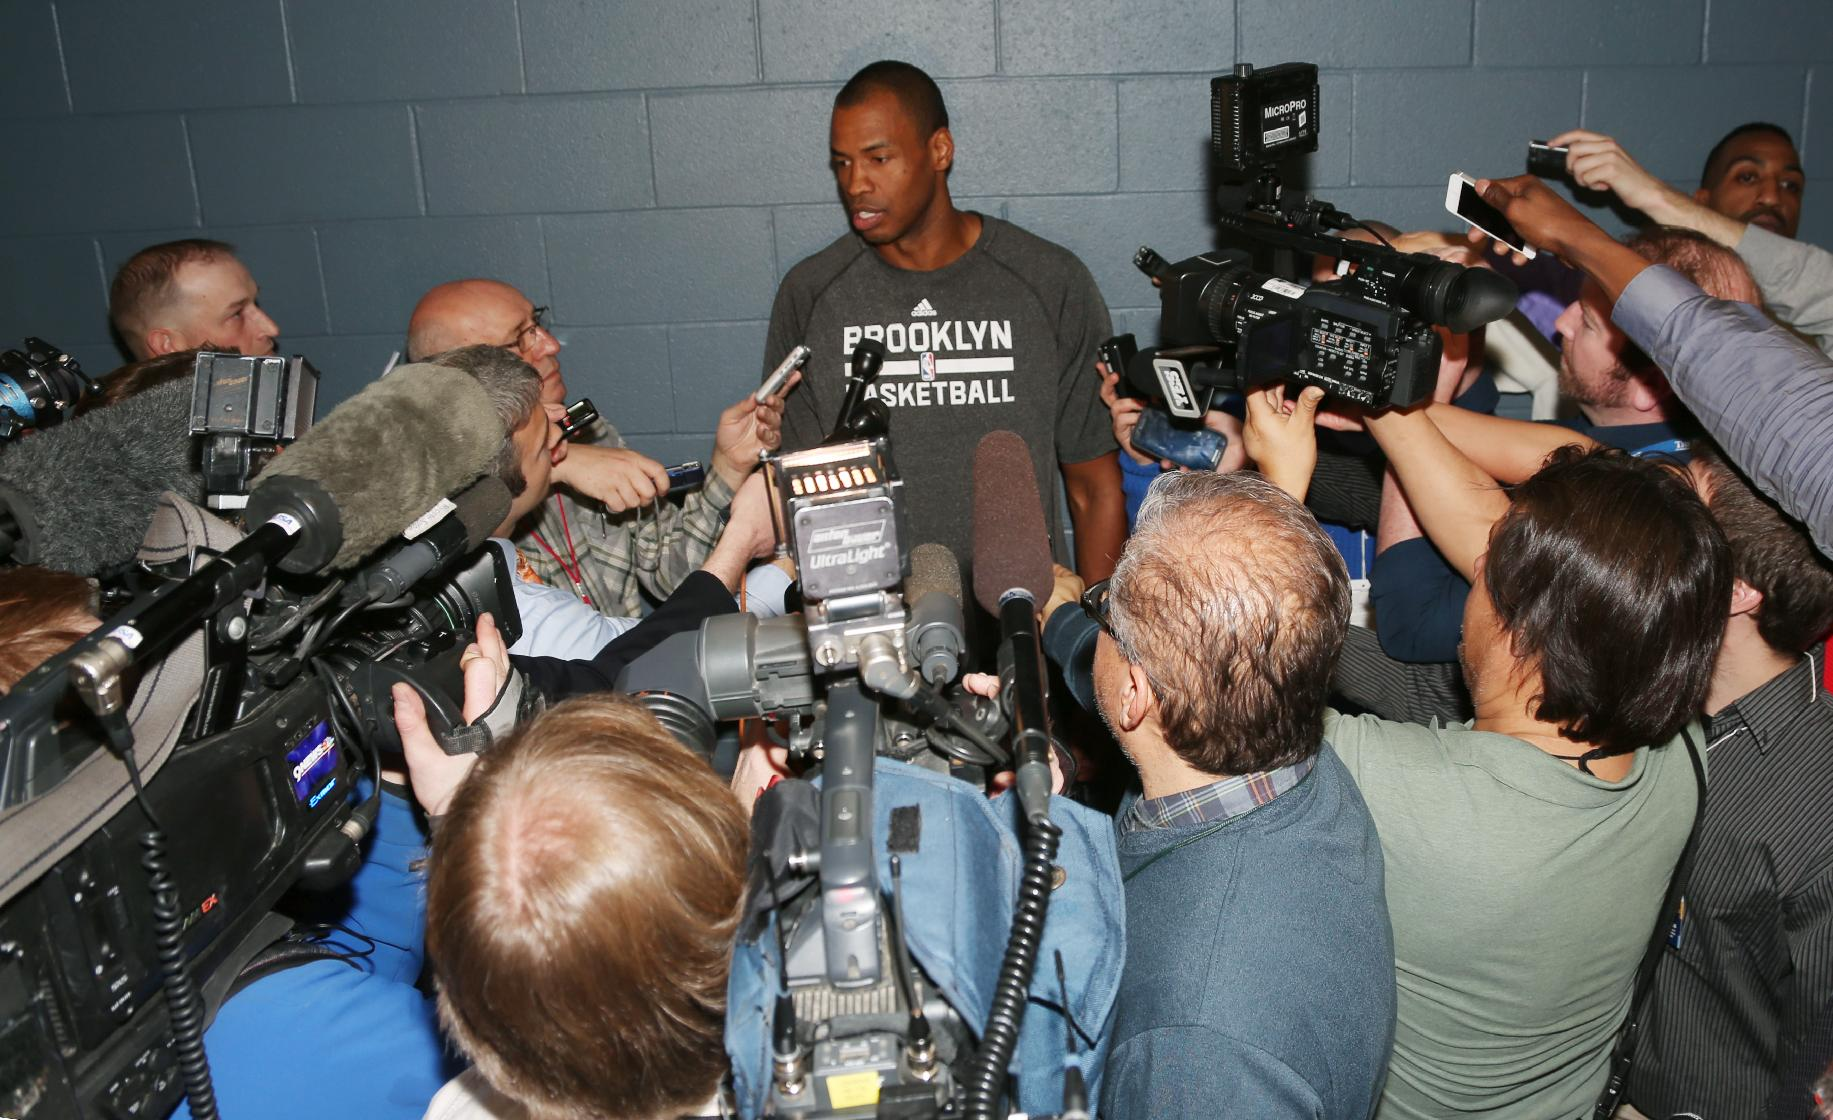 Brooklyn Nets center Jason Collins talks to reporters before the Nets faced the Denver Nuggets in an NBA basketball game in Denver on Thursday, Feb. 27, 2014